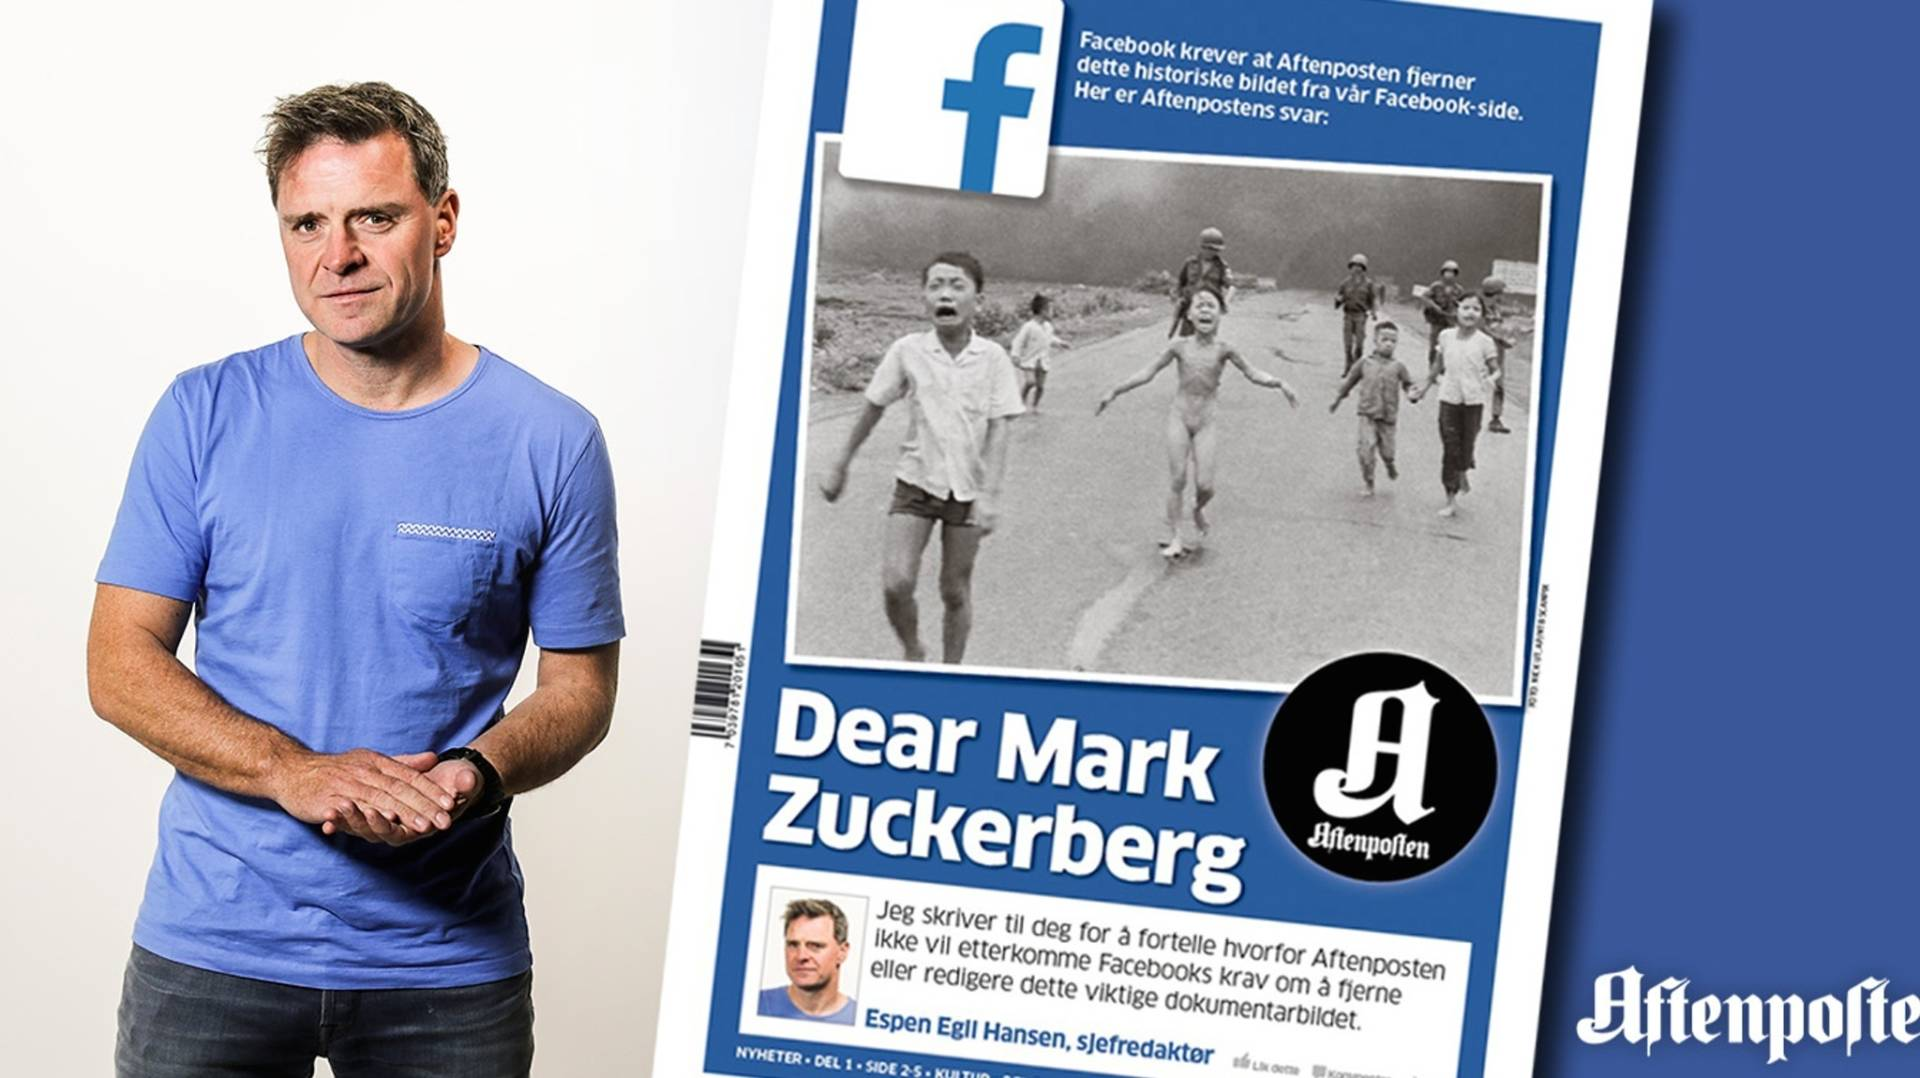 Espen Egil Hansen, the editor-in-chief of Norway's Aftenposten newspaper, addressed Facebook CEO Mark Zuckerberg in a front-page open letter on Friday.